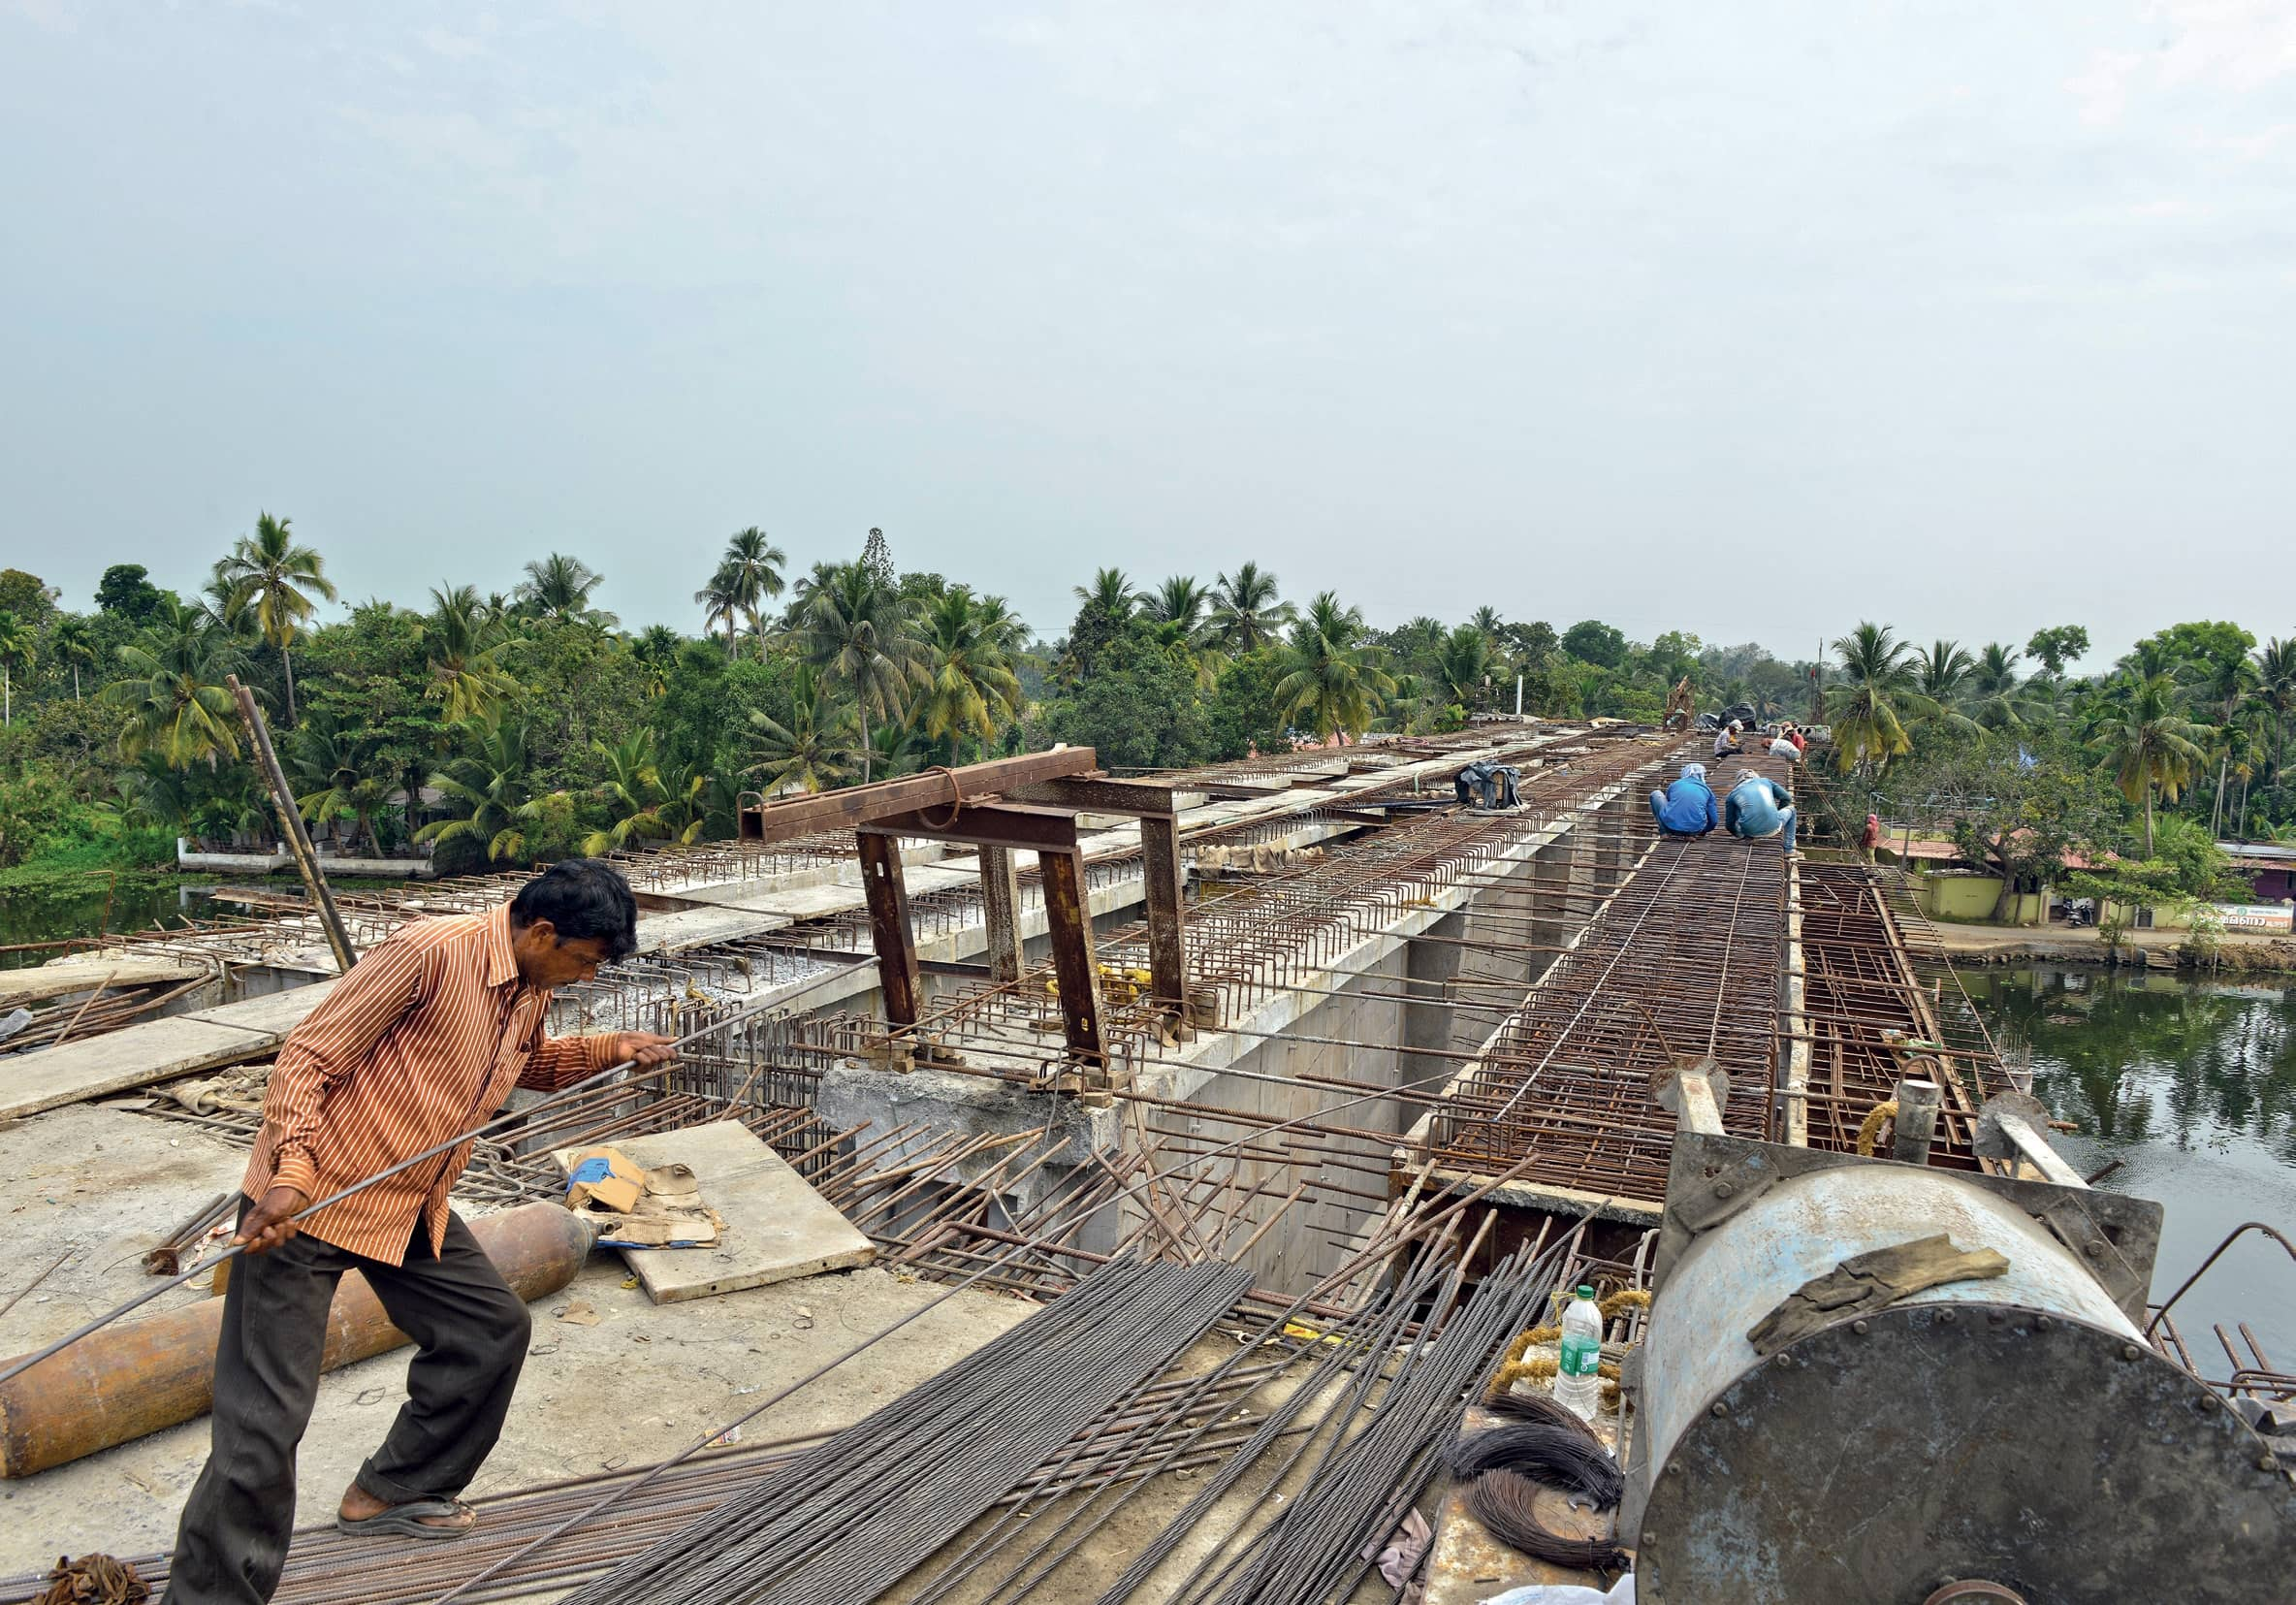 Kerala - On The Road To Recovery